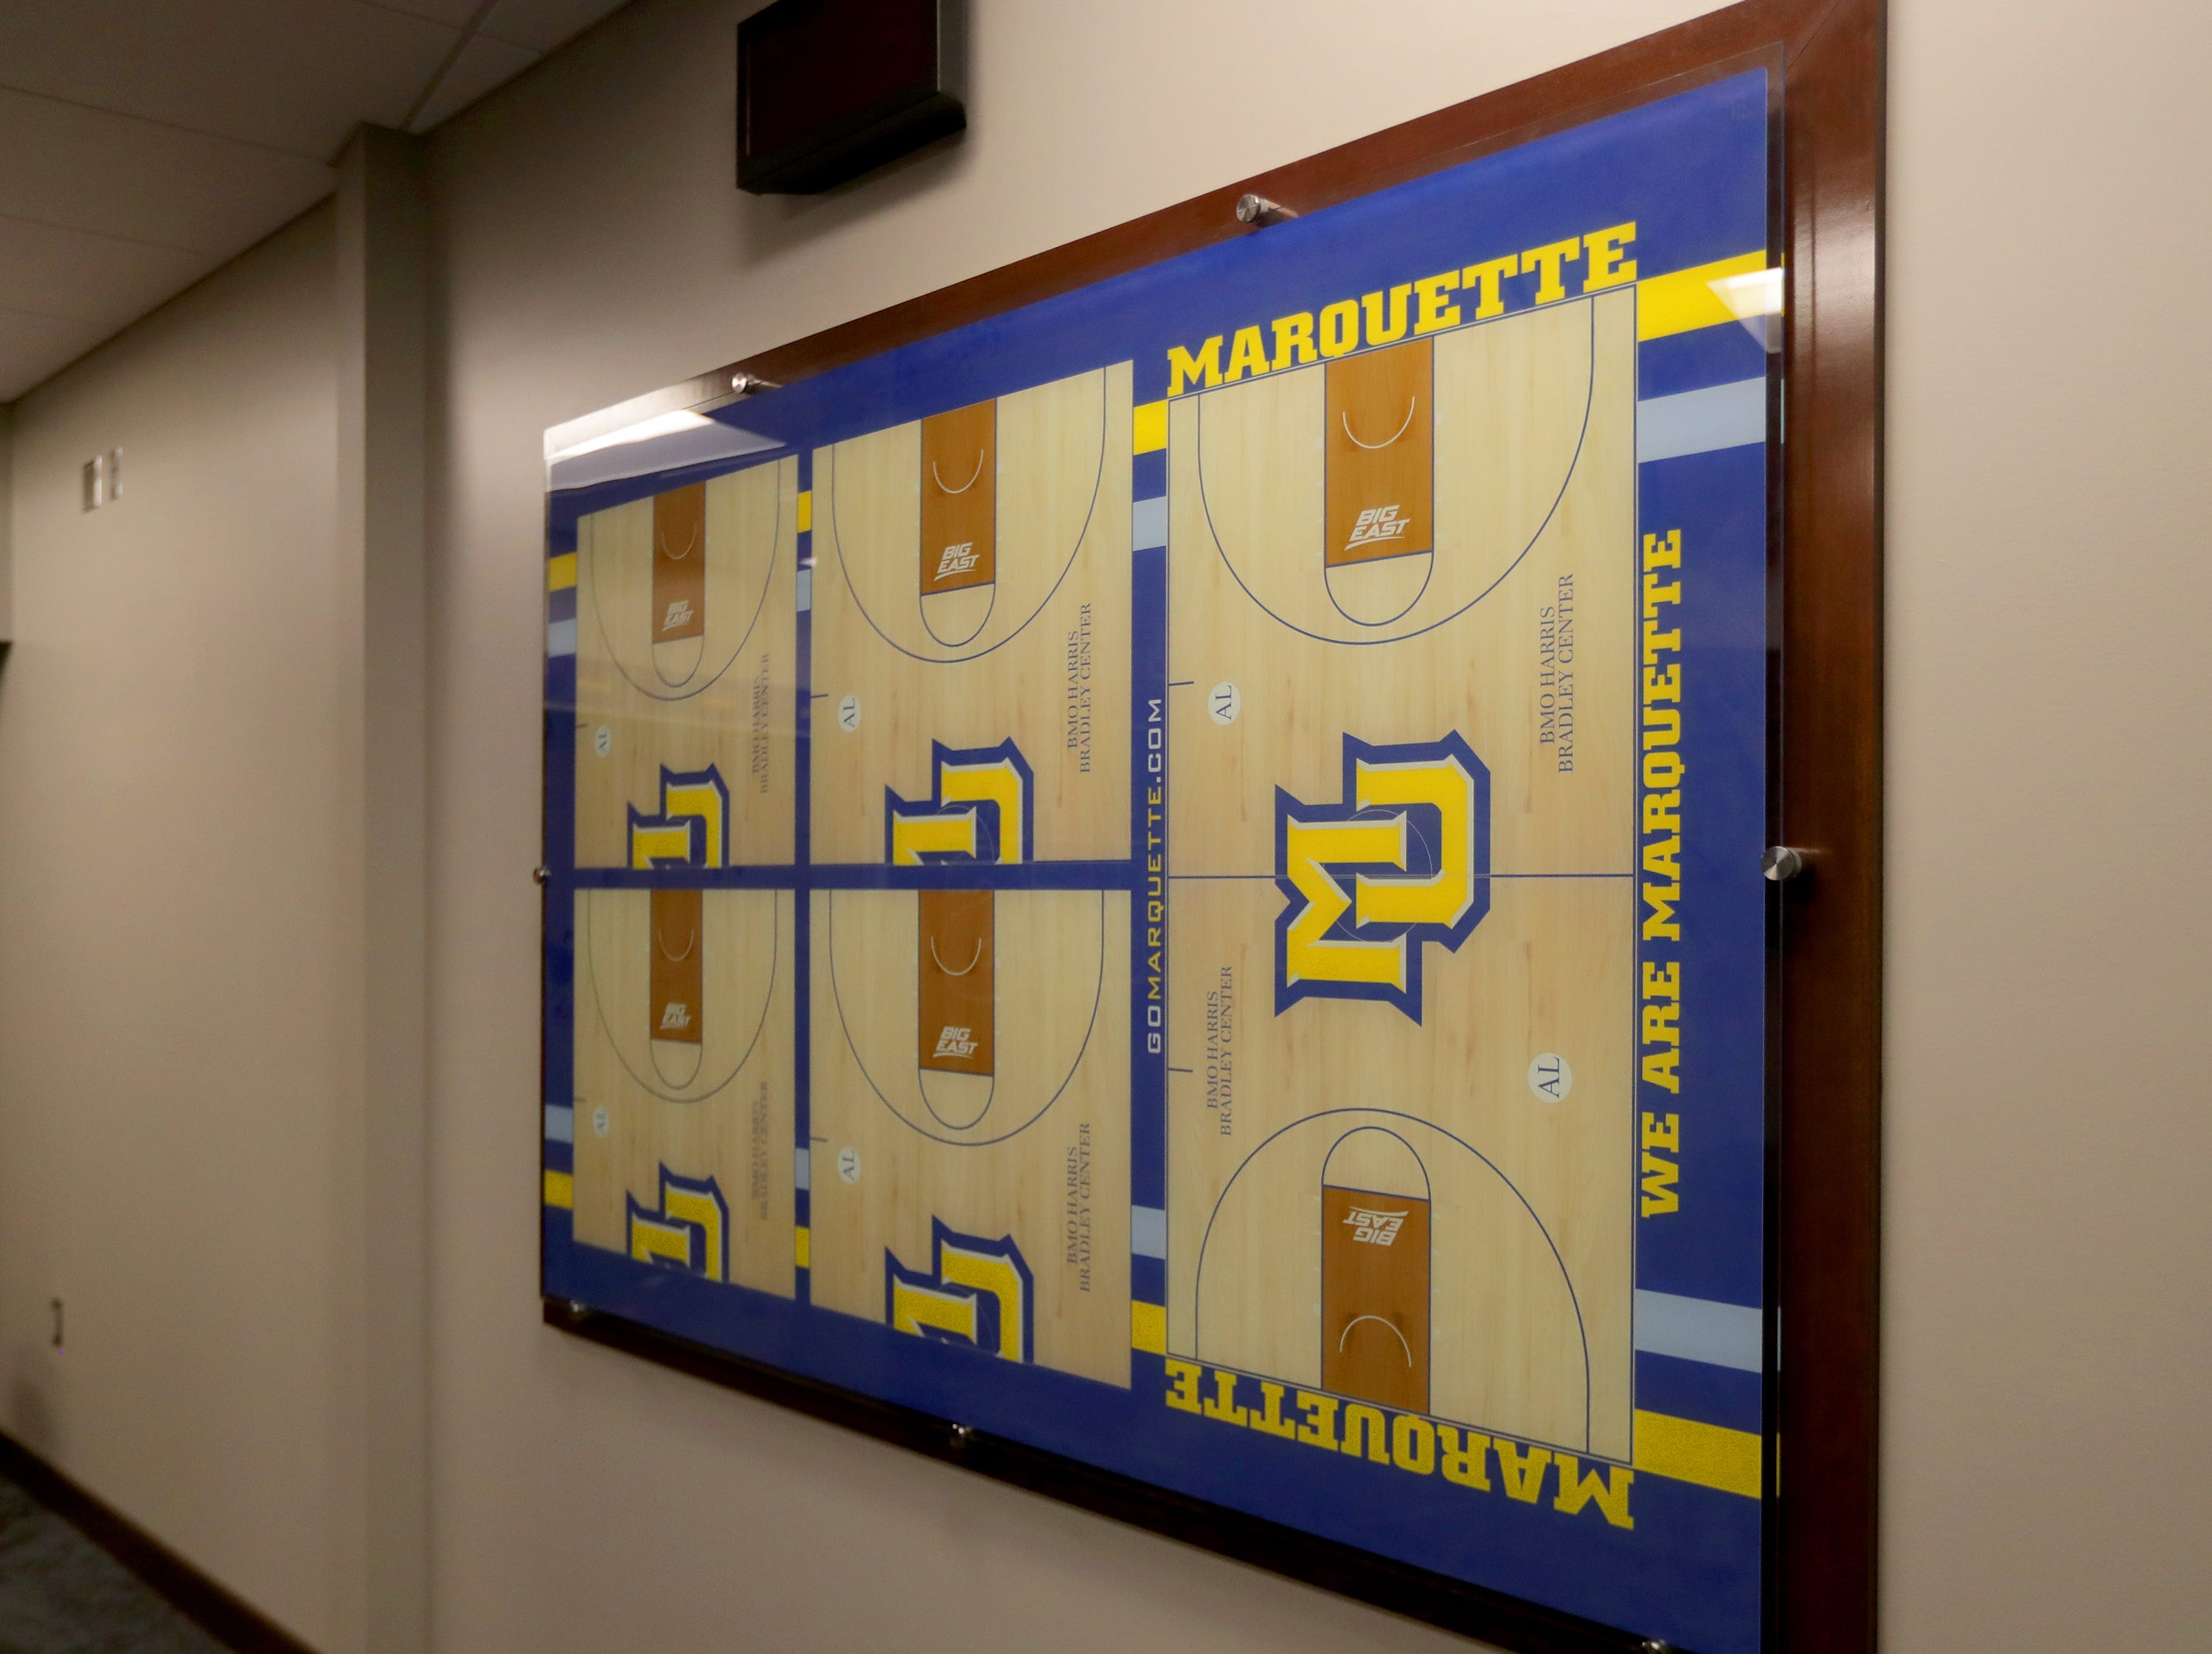 A dry erase board for drawing up plays is included in the locker room. The Marquette mens' basketball team locker room is complete at the new Fiserve Forum, the home of the Milwaukee Bucks. Monday, August 27, 2018.  -  Photo by Mike De Sisti / Milwaukee Journal Sentinel